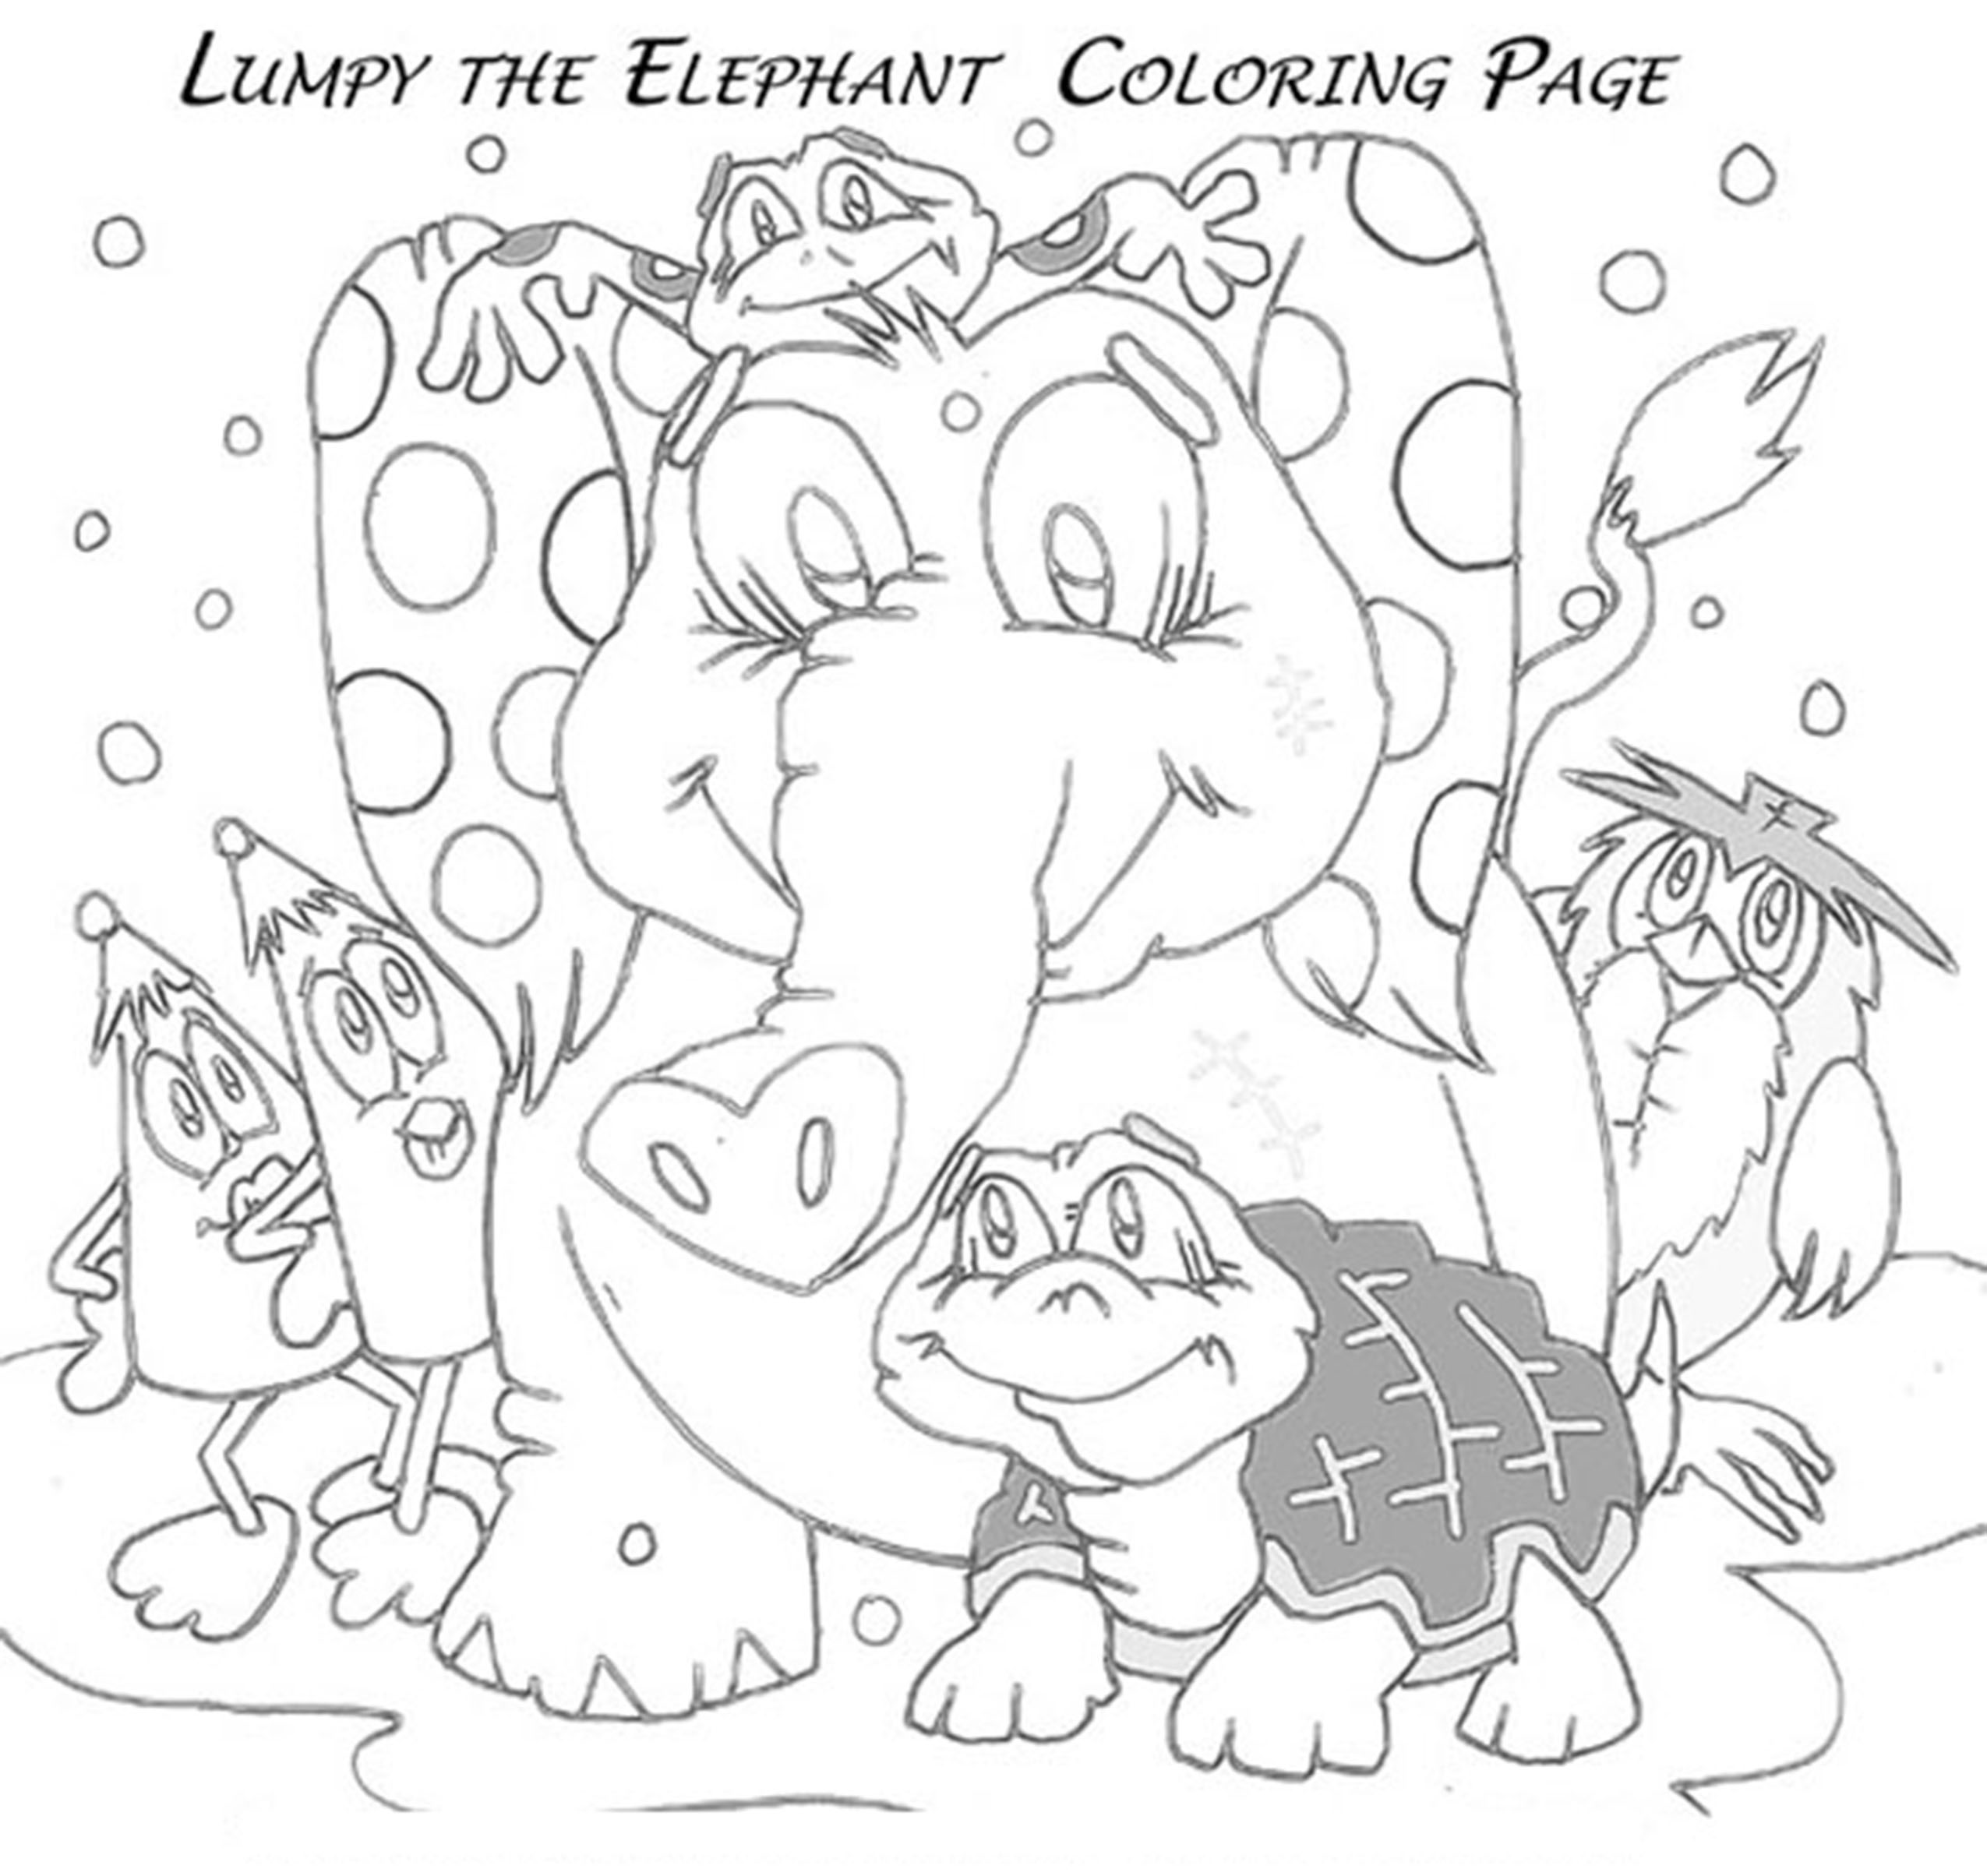 lumpy coloring pages - photo#33